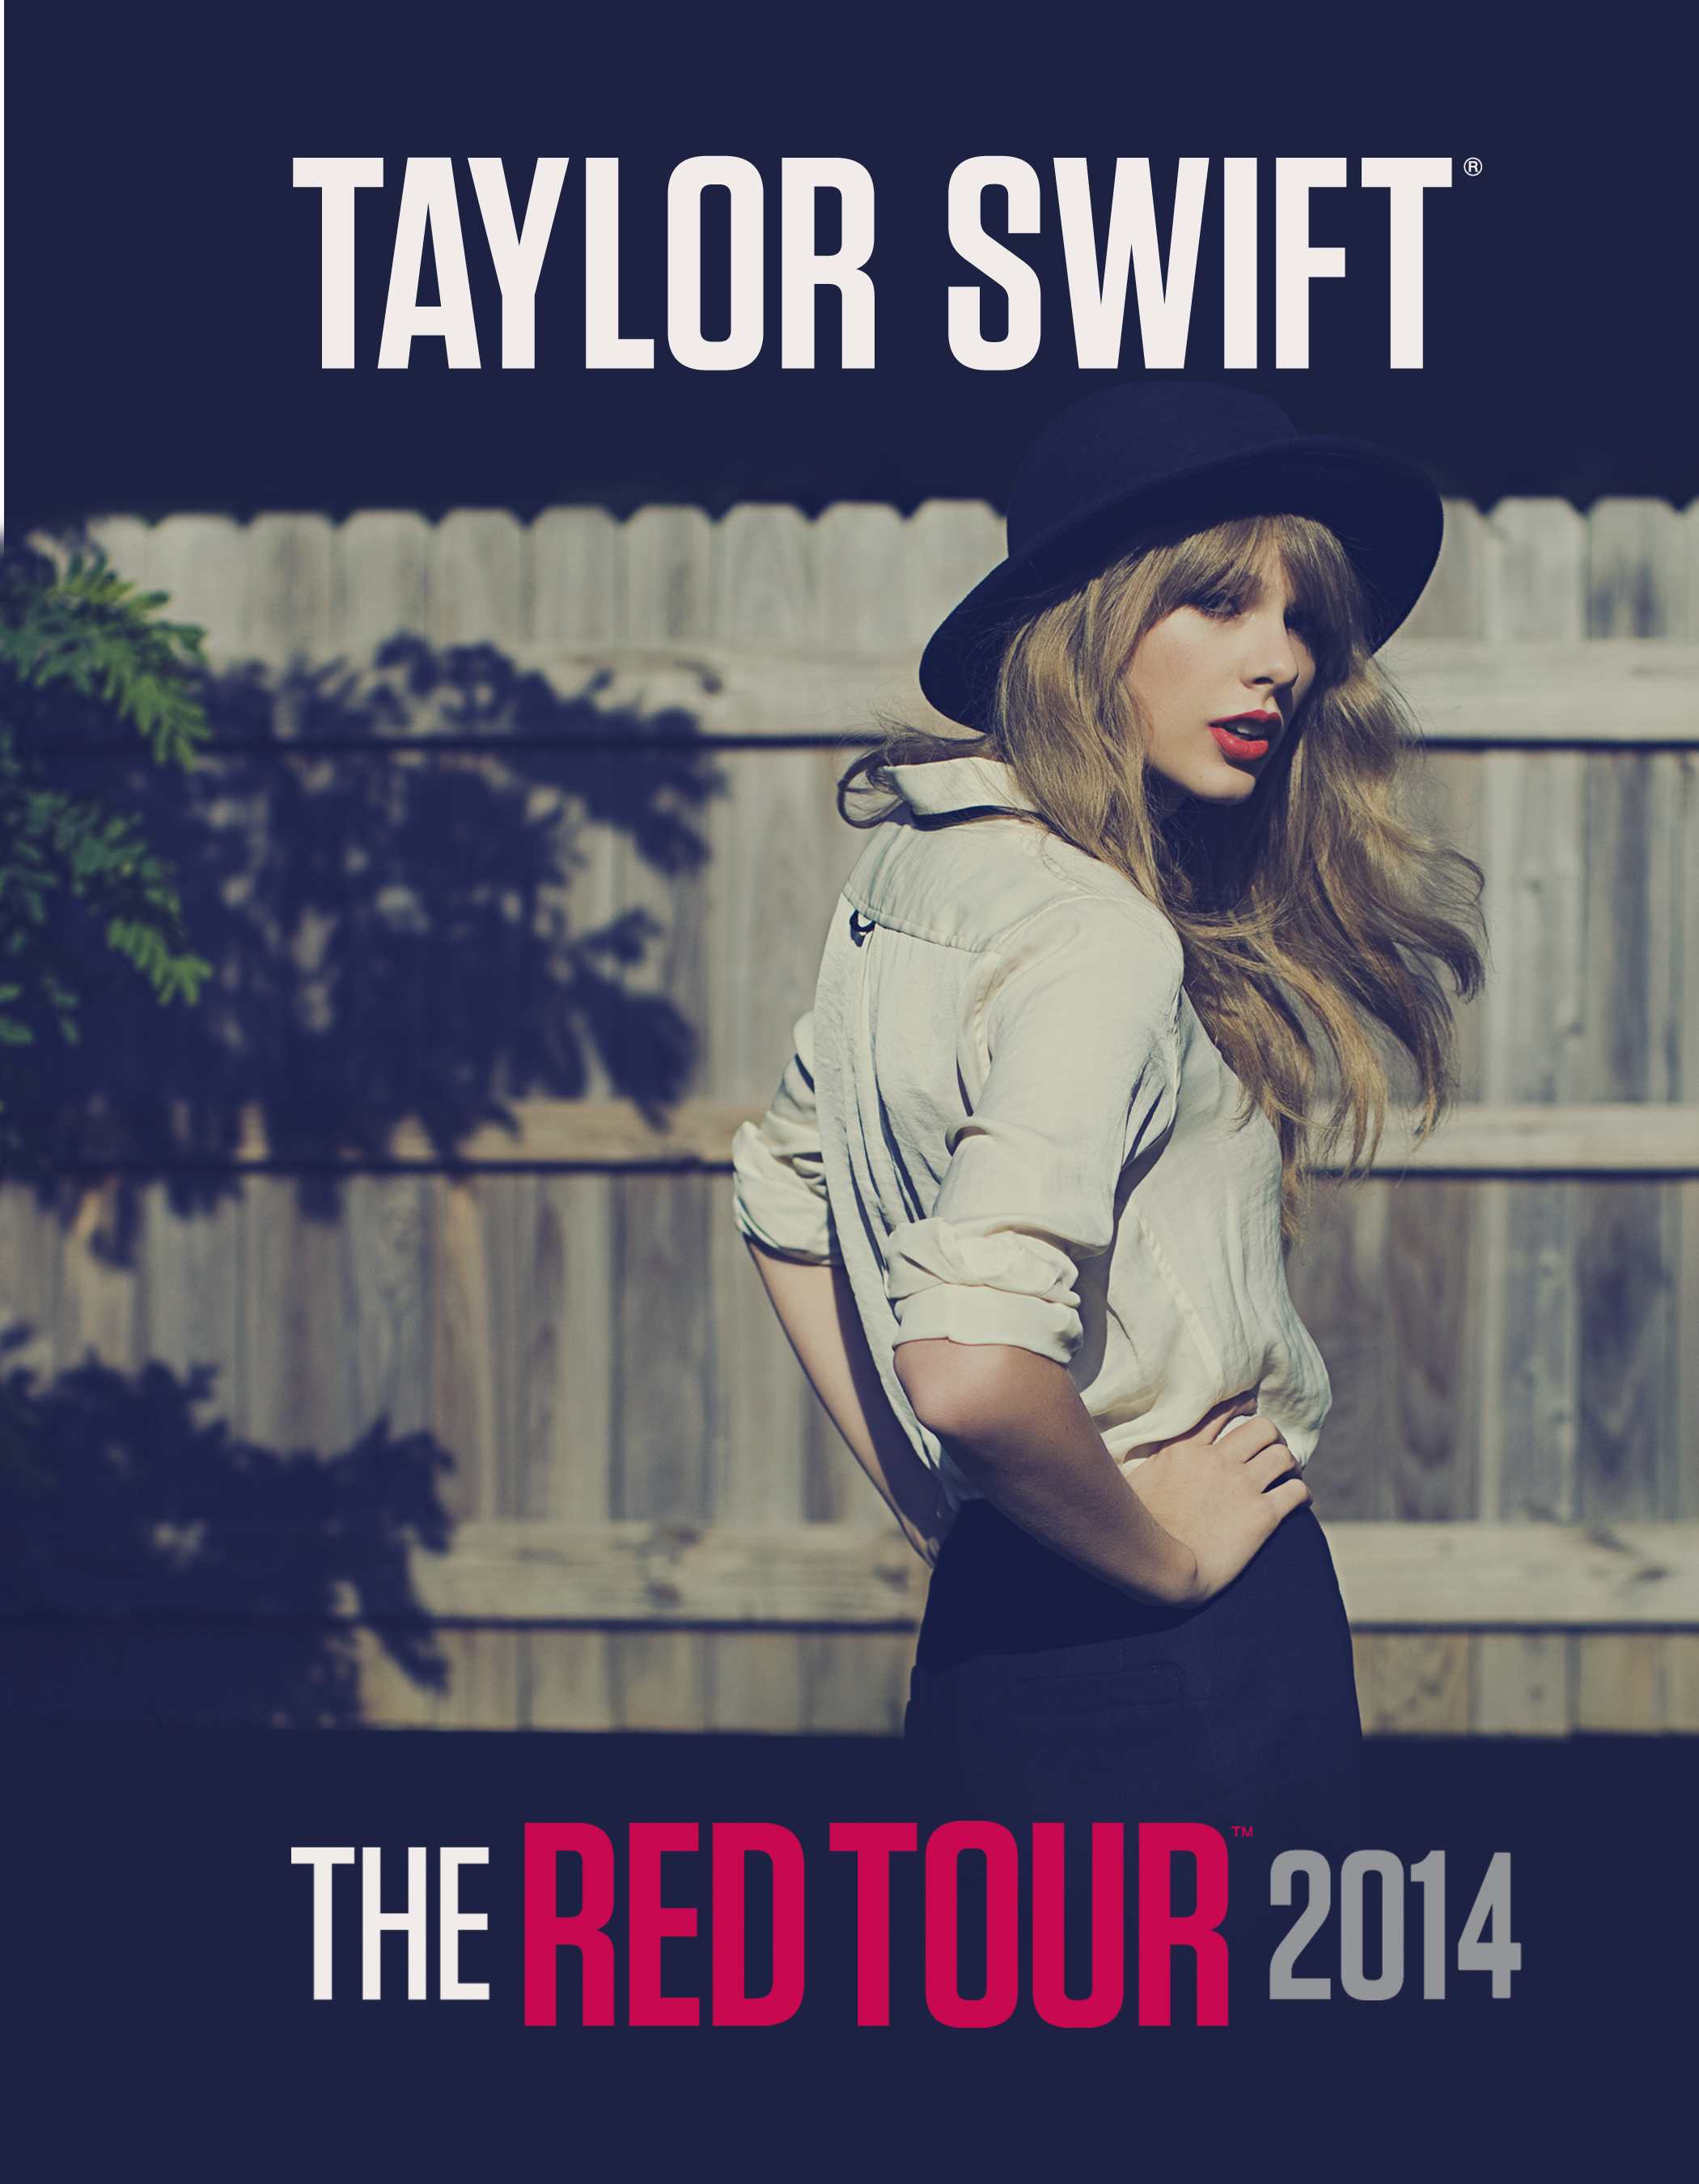 RED TOUR COVER.jpg